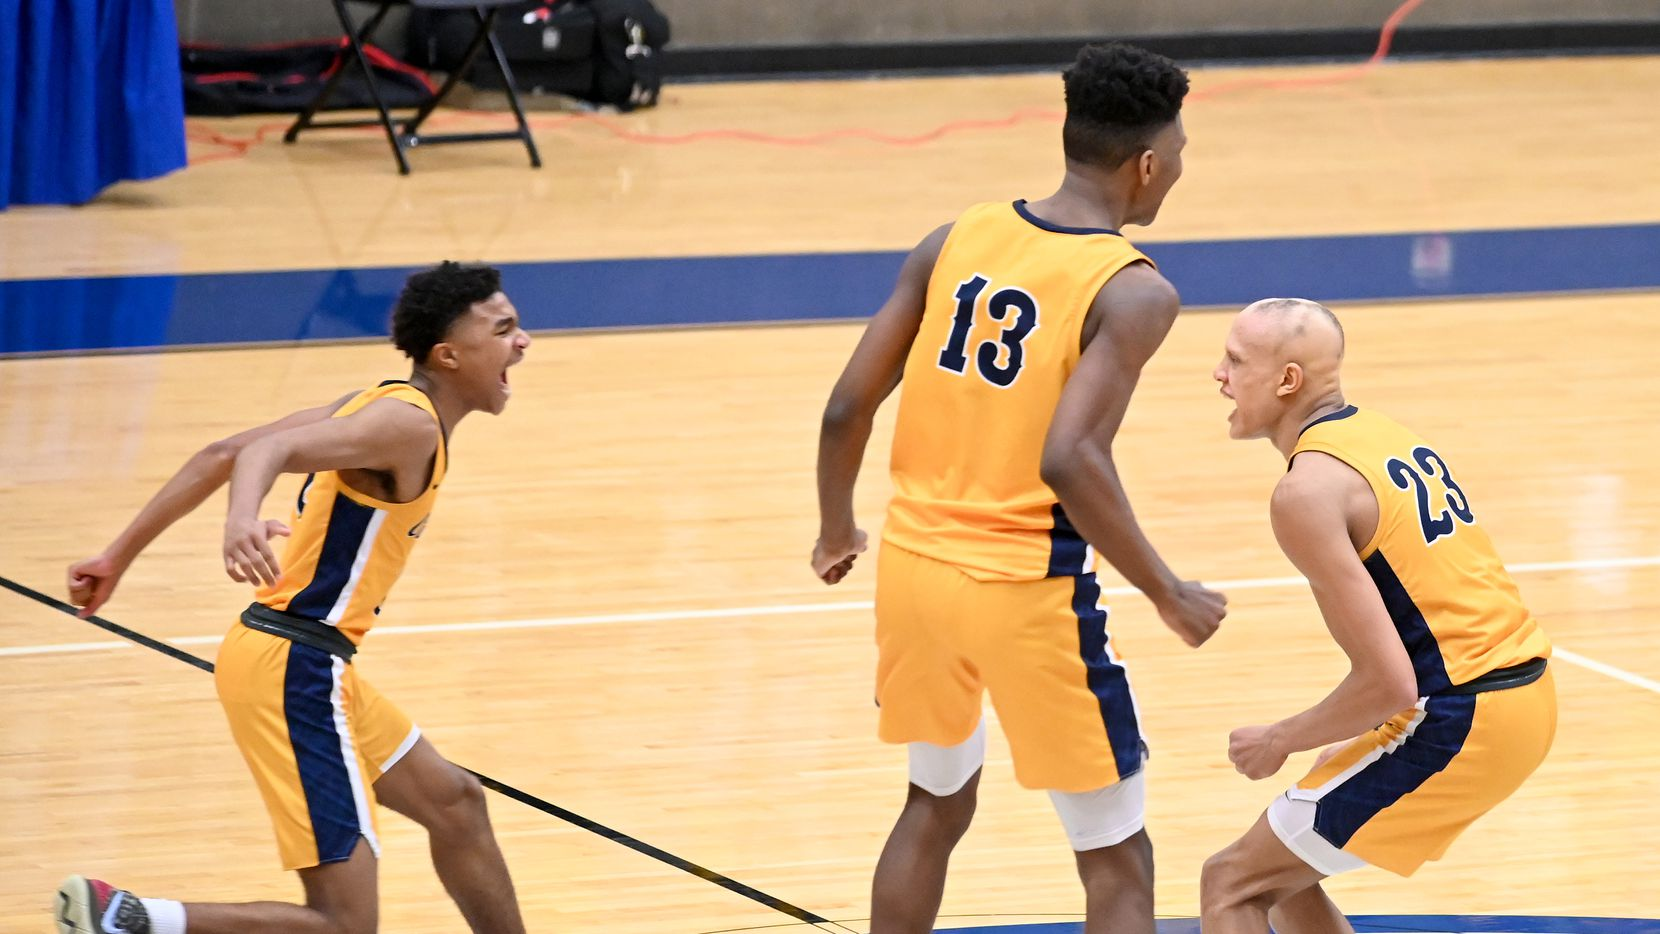 From left, Faith Family's Dallas Hobbs, Mekhi Collins (13) and Jordan Walsh celebrate their win of a Class 4A Region II final boys playoff basketball game between Dallas Carter and Oak Cliff Faith Family, Friday, March 5, 2021, in Grand Prairie, Texas. (Matt Strasen/Special Contributor)